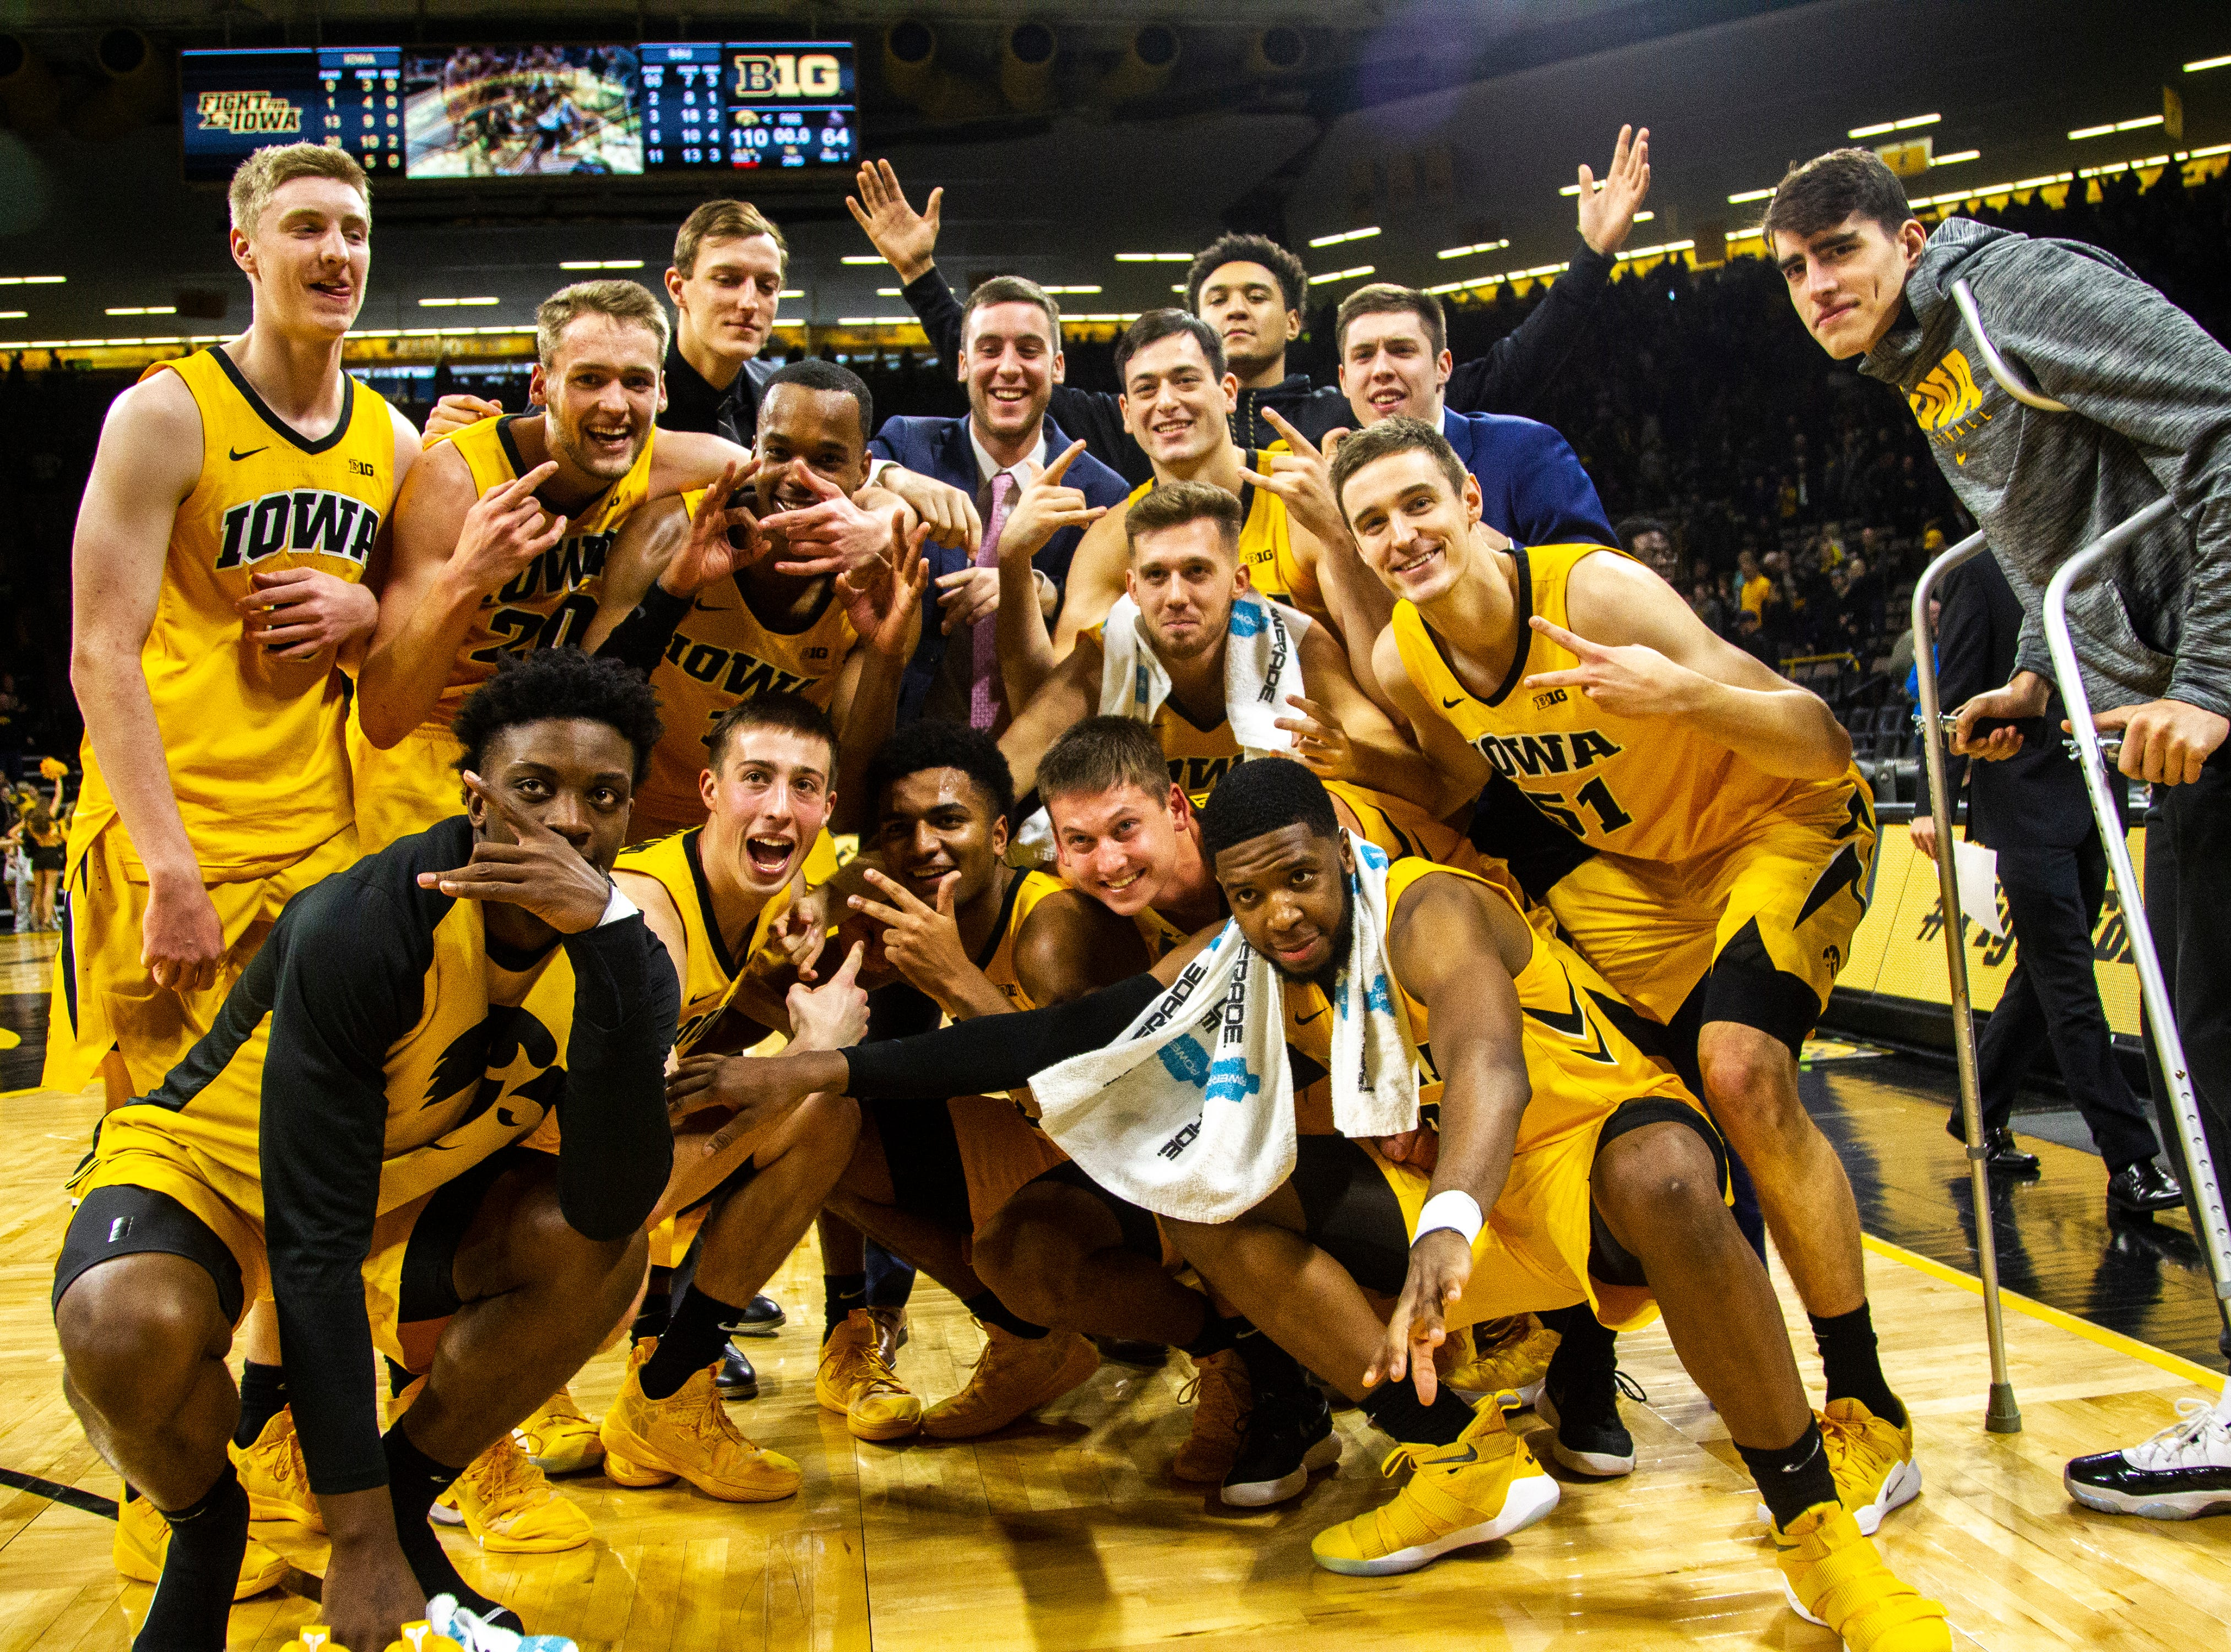 Iowa Hawkeyes players pose for a photo after a NCAA men's basketball game on Saturday, Dec. 22, 2018, at Carver-Hawkeye Arena in Iowa City. The Hawkeyes defeated Savannah State, 110-64.